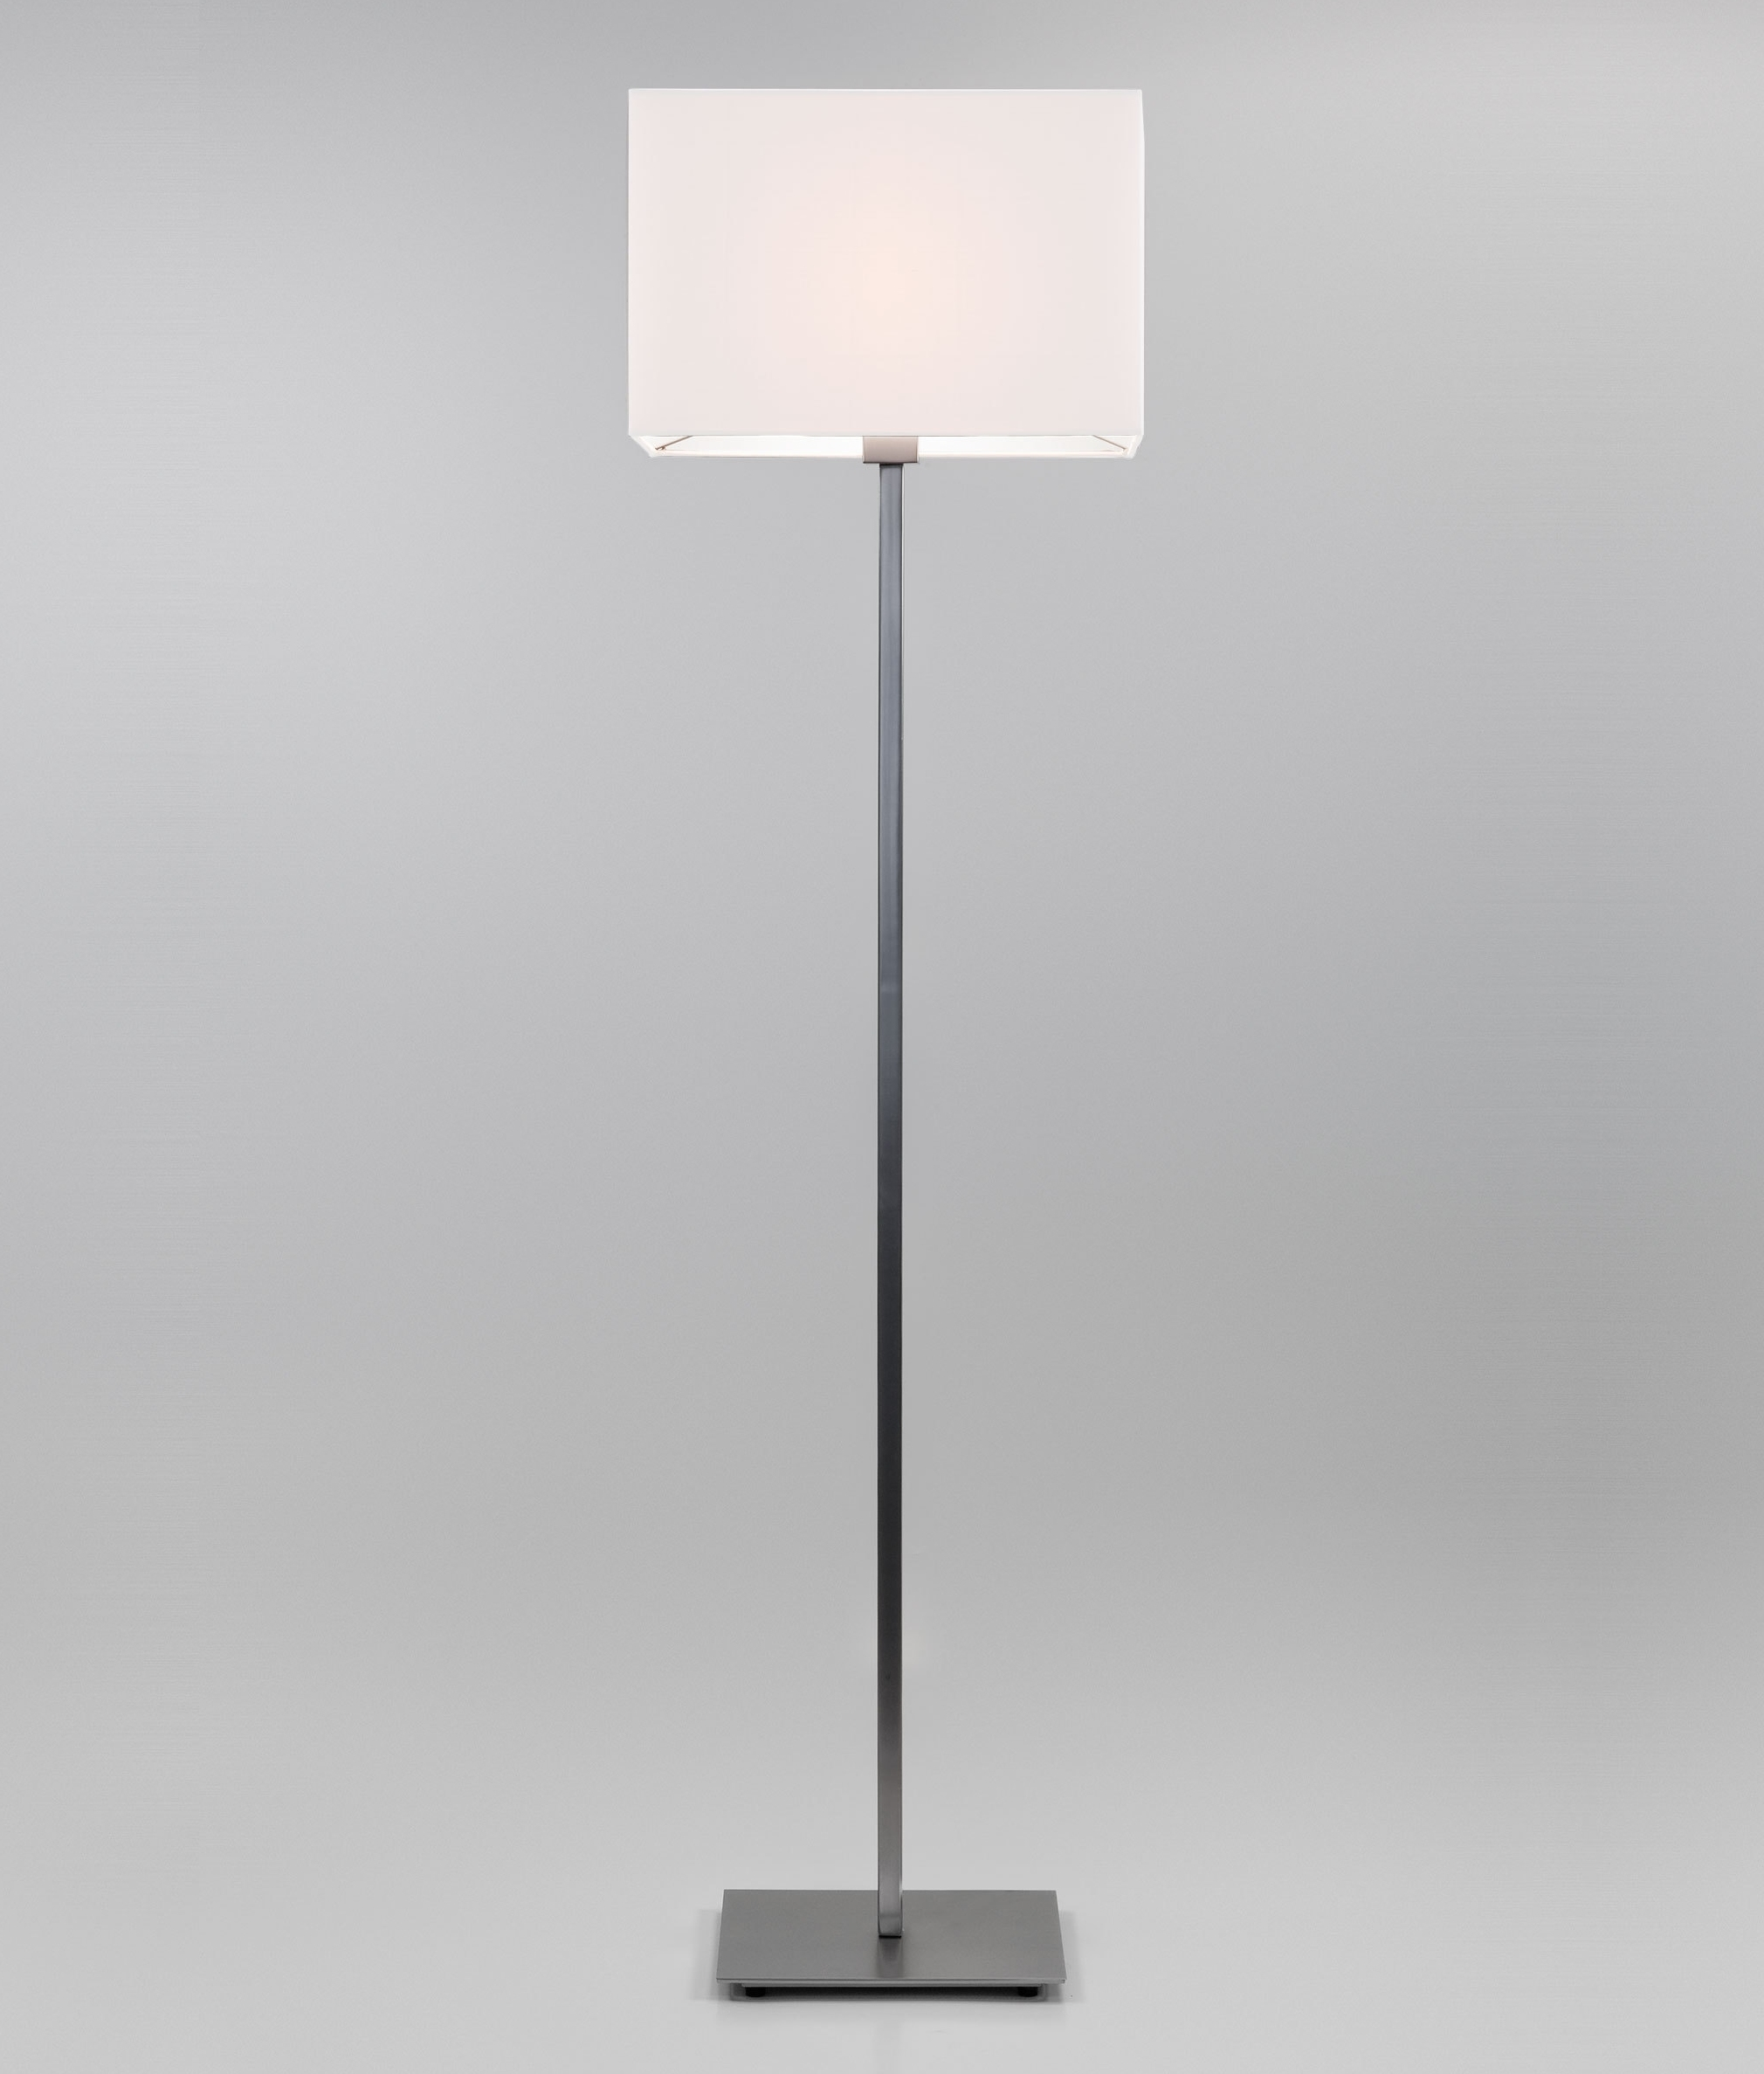 A floor standing lamp with a square stem and floor plate